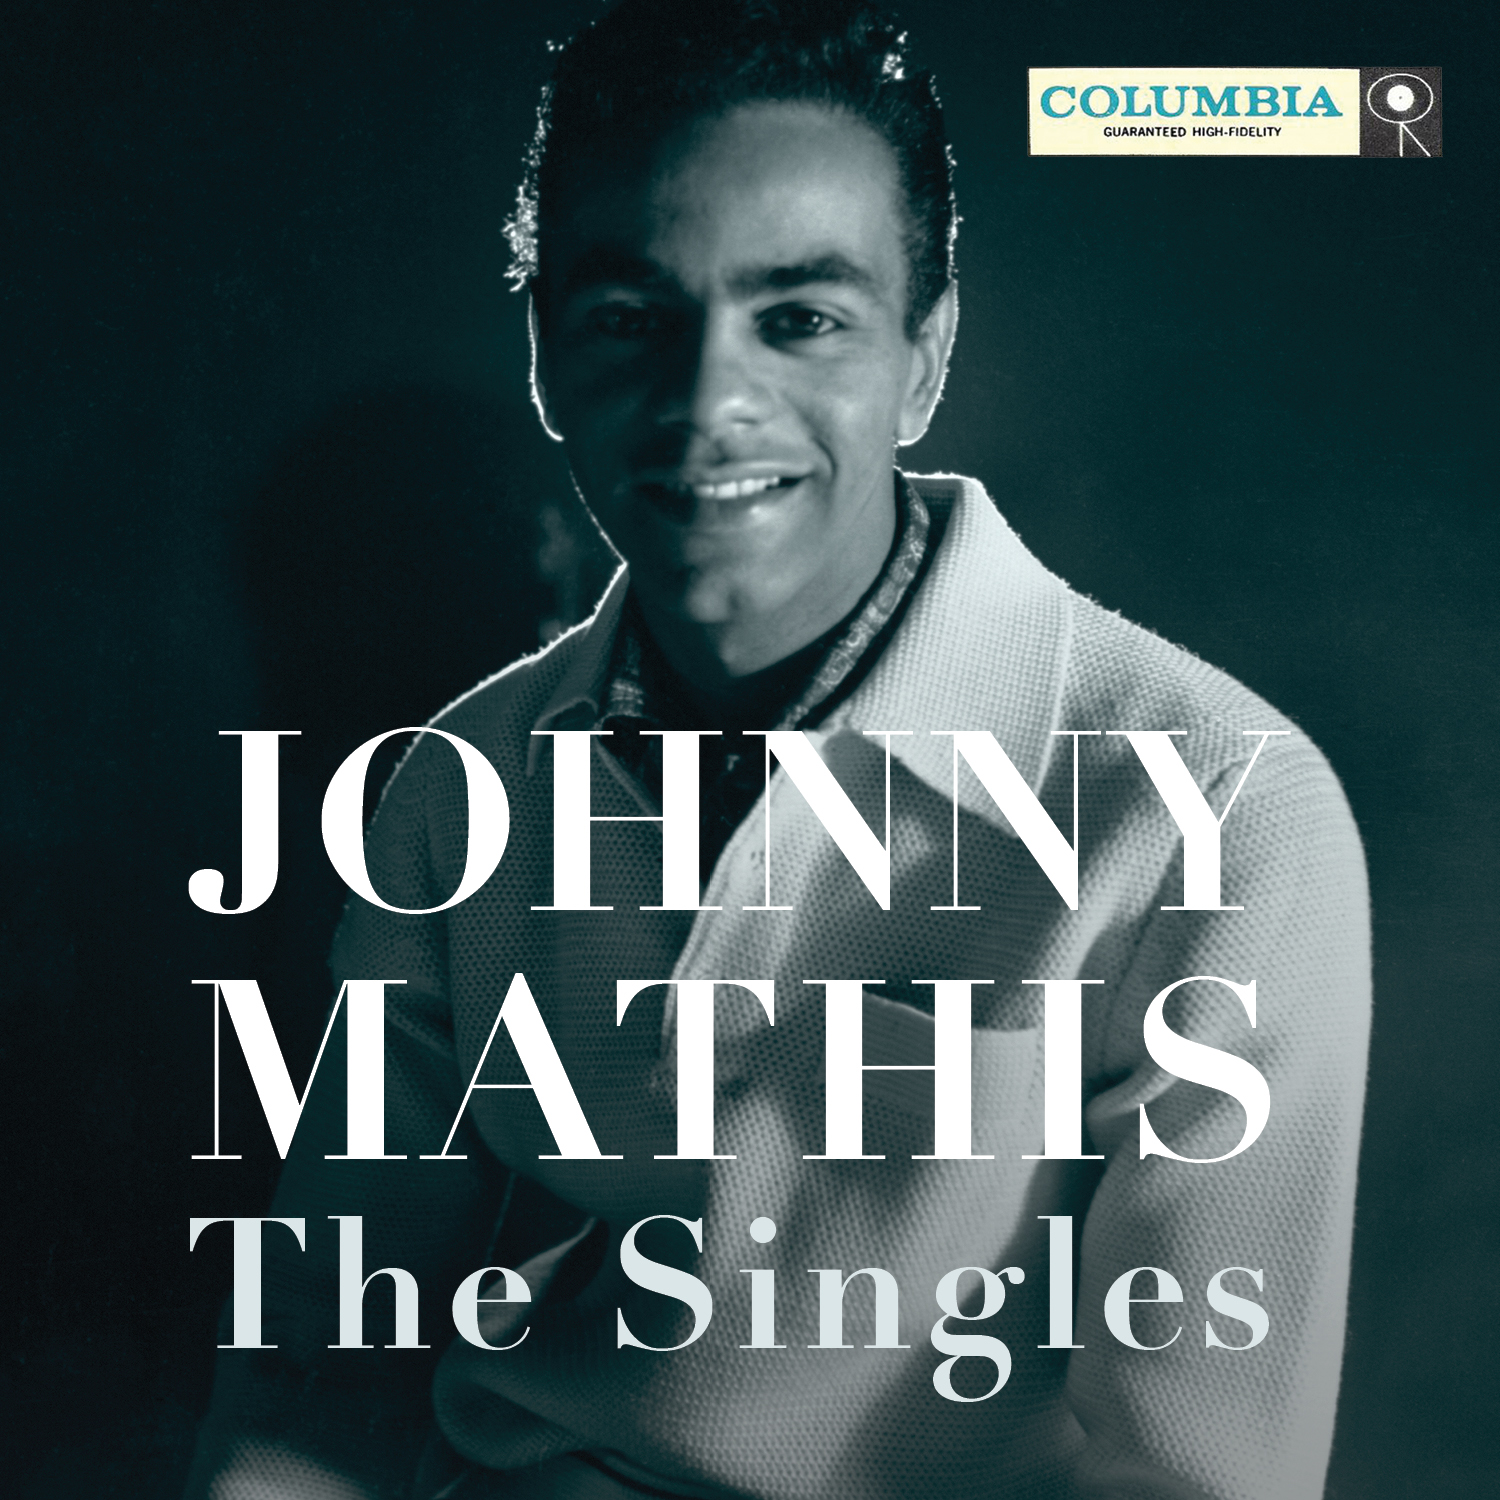 Johnny Mathis - Songs From